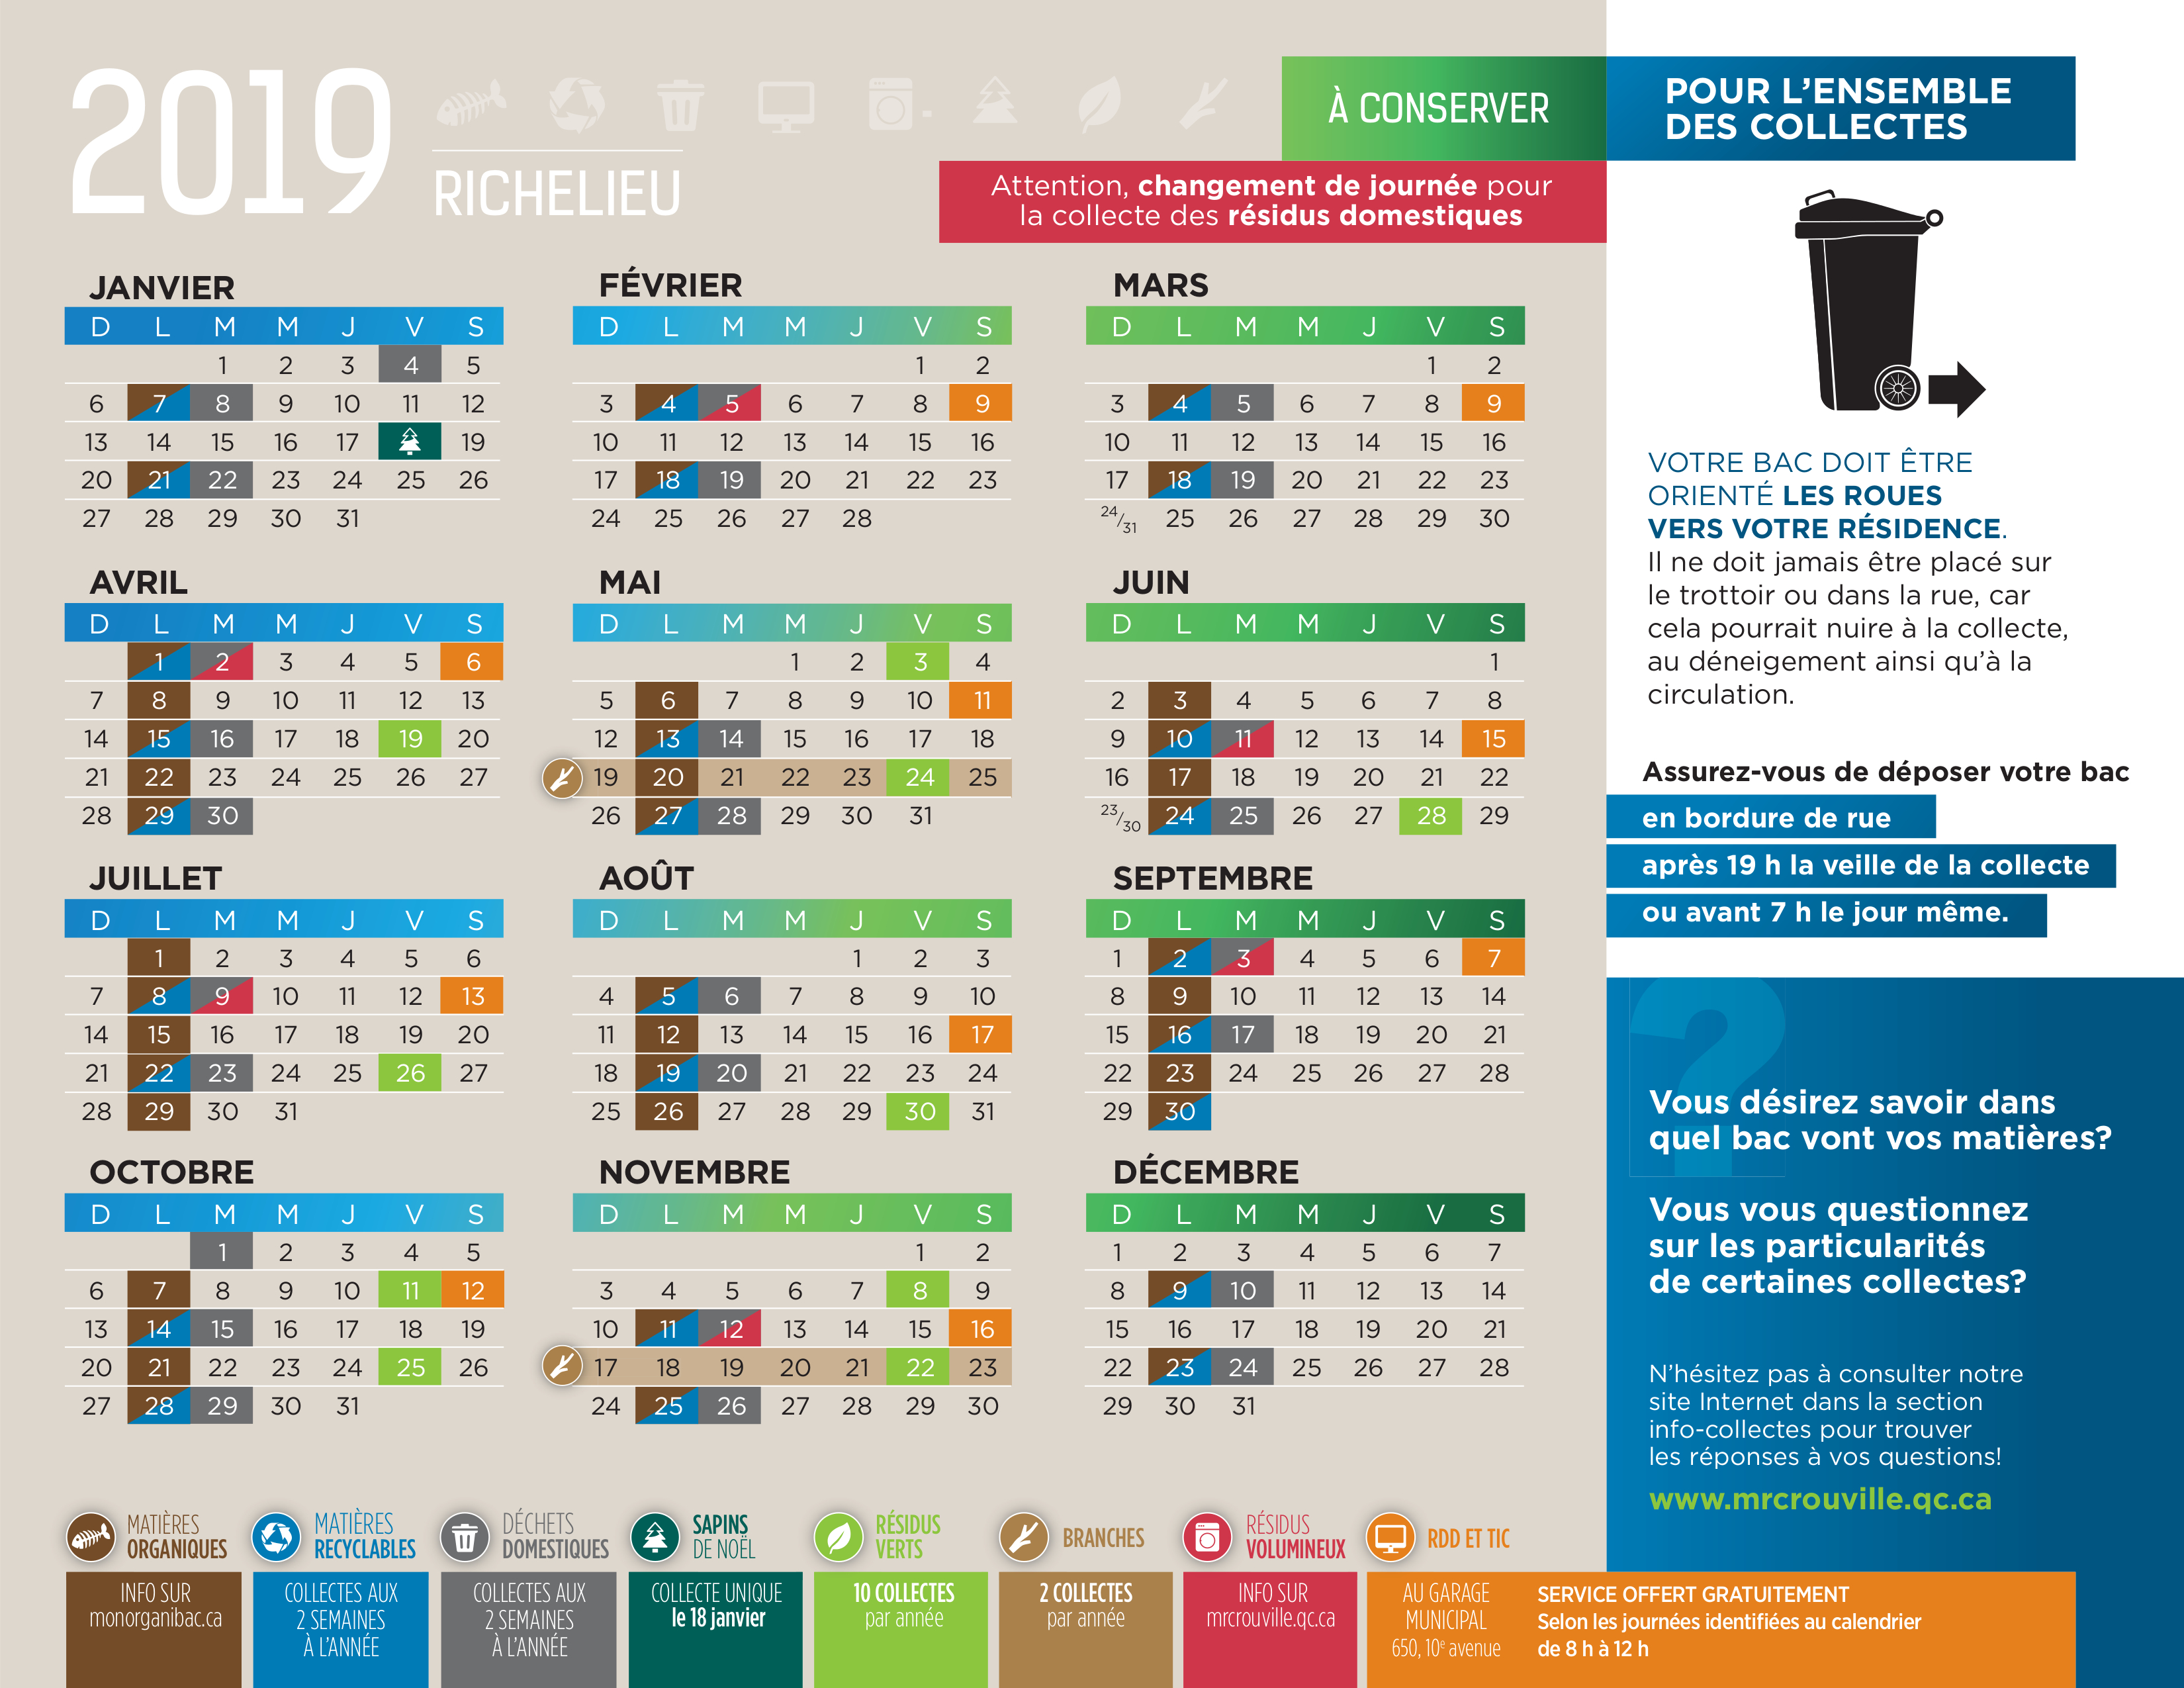 Calendrier-collectes-2019